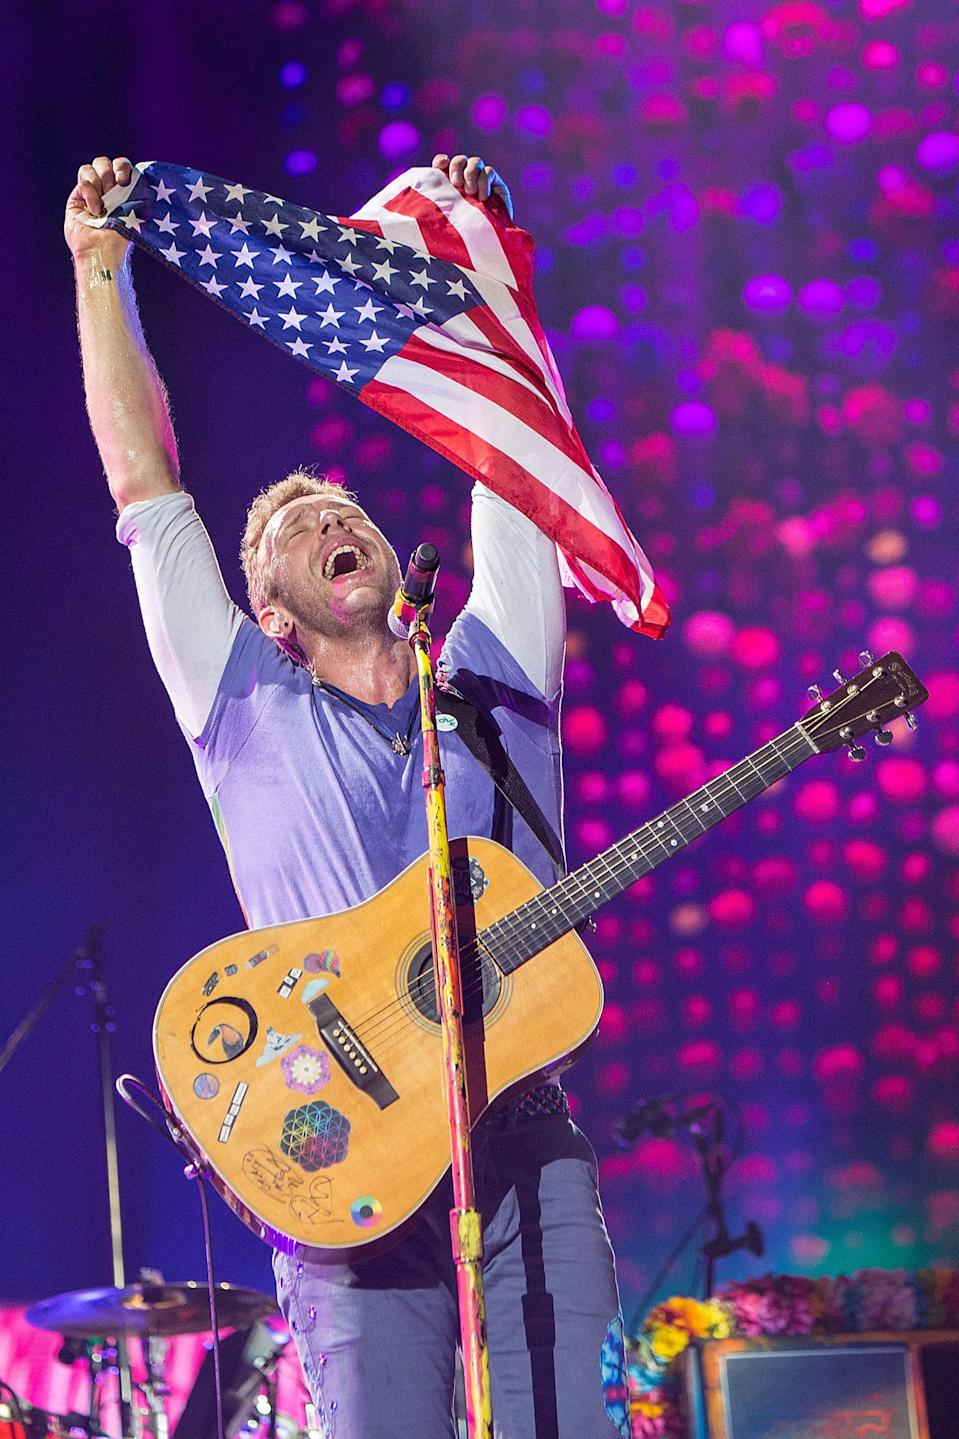 """<p>In San Diego, the Coldplay frontman held up the U.S. flag during a concert. The Friday edition of that same show featured an appearance by late night host James Corden, who joined the band in a rendition of """"Free Fallin"""" by the late Tom Petty, one of many tributes since Petty's Oct. 2 death. (Photo: Daniel Knighton/Getty Images) </p>"""